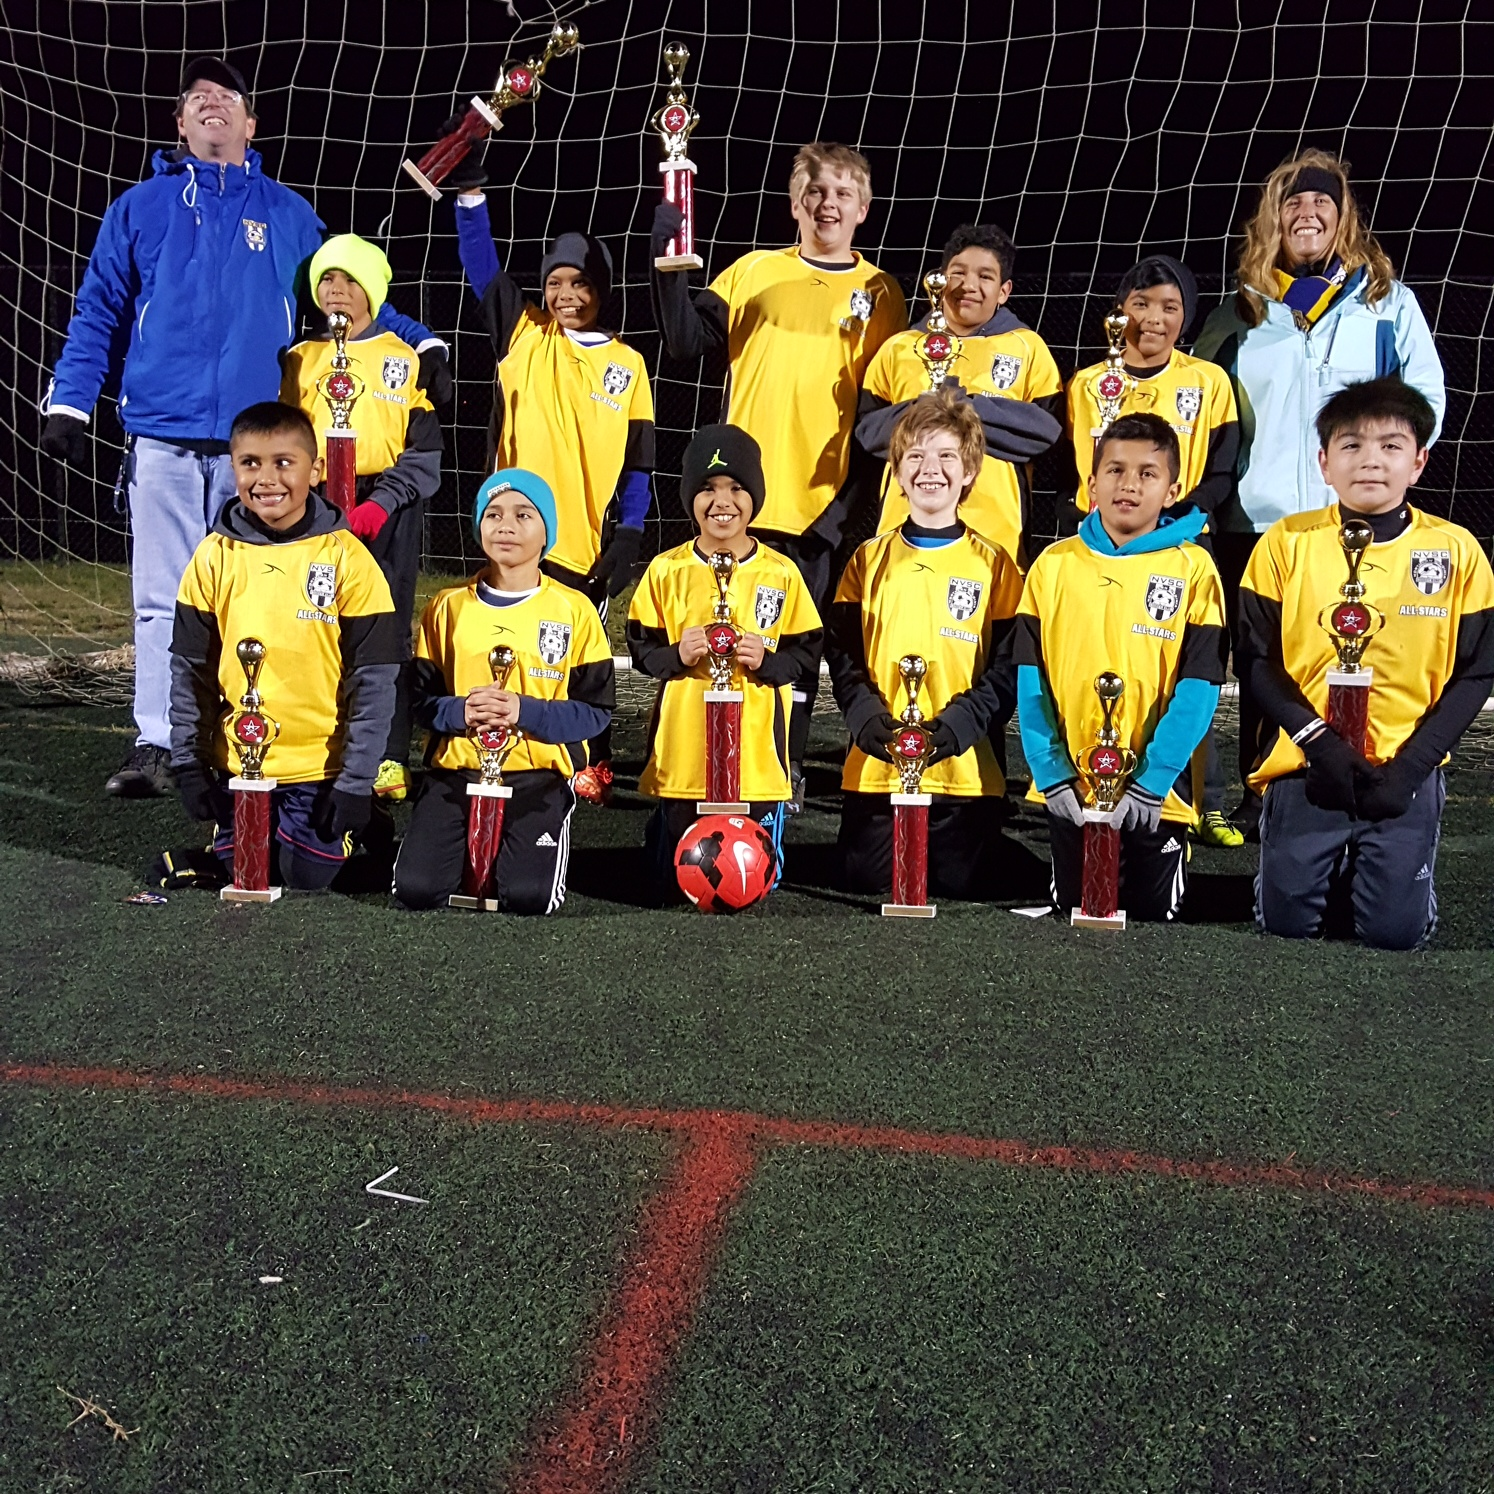 Fall 2015 Herndon All-Star Tournament (U11B Blue Champions)